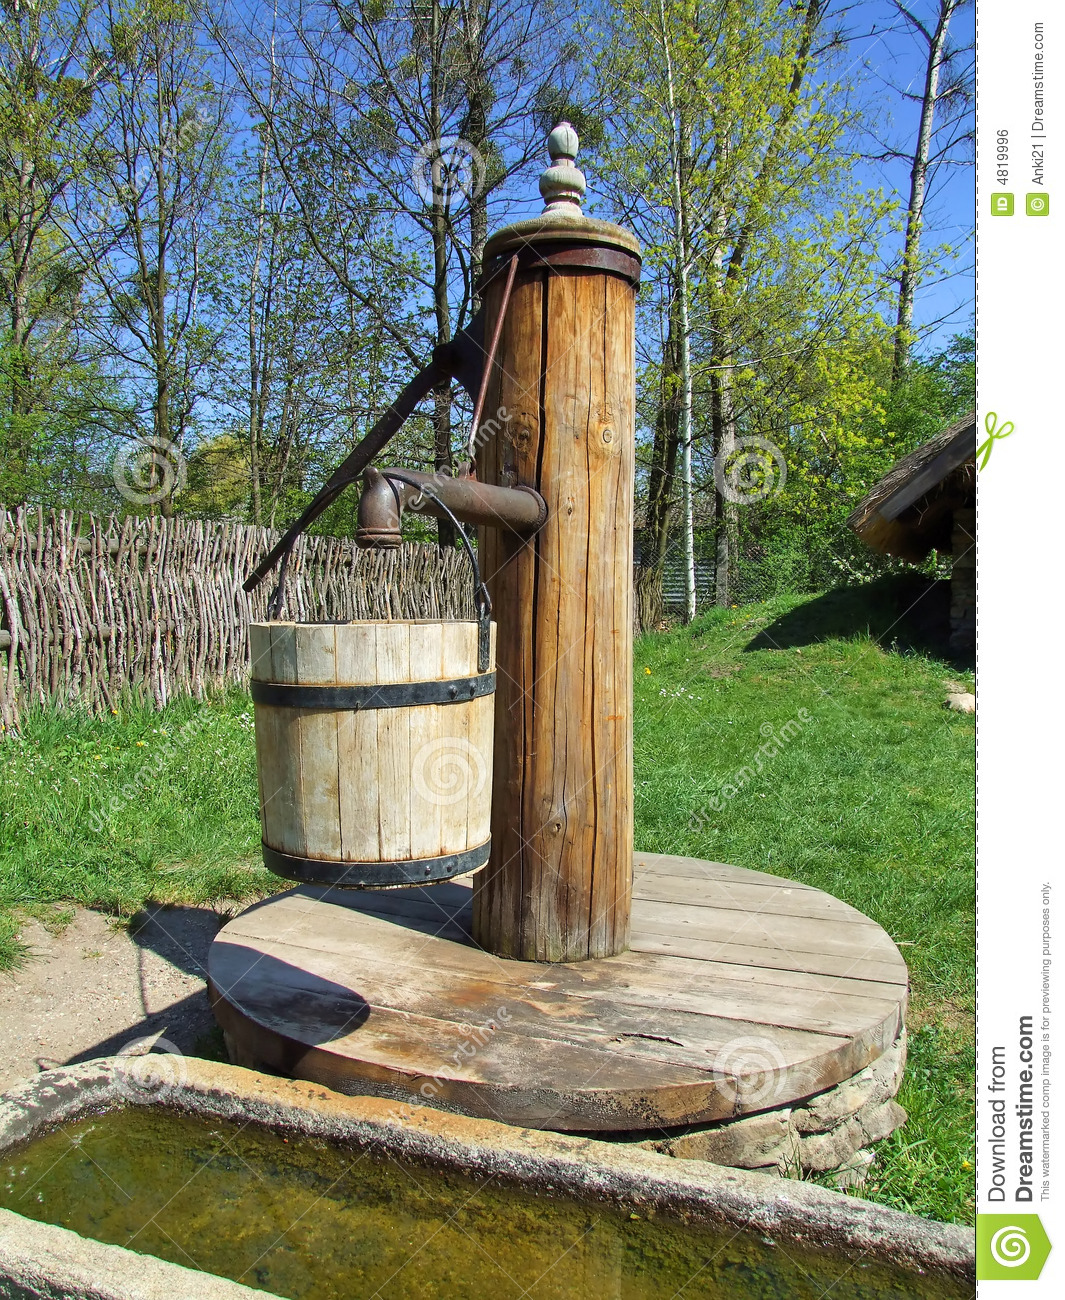 Royalty Free Stock Image Old Wooden Pump Village Image4819996 on Water Well Pump House Plans